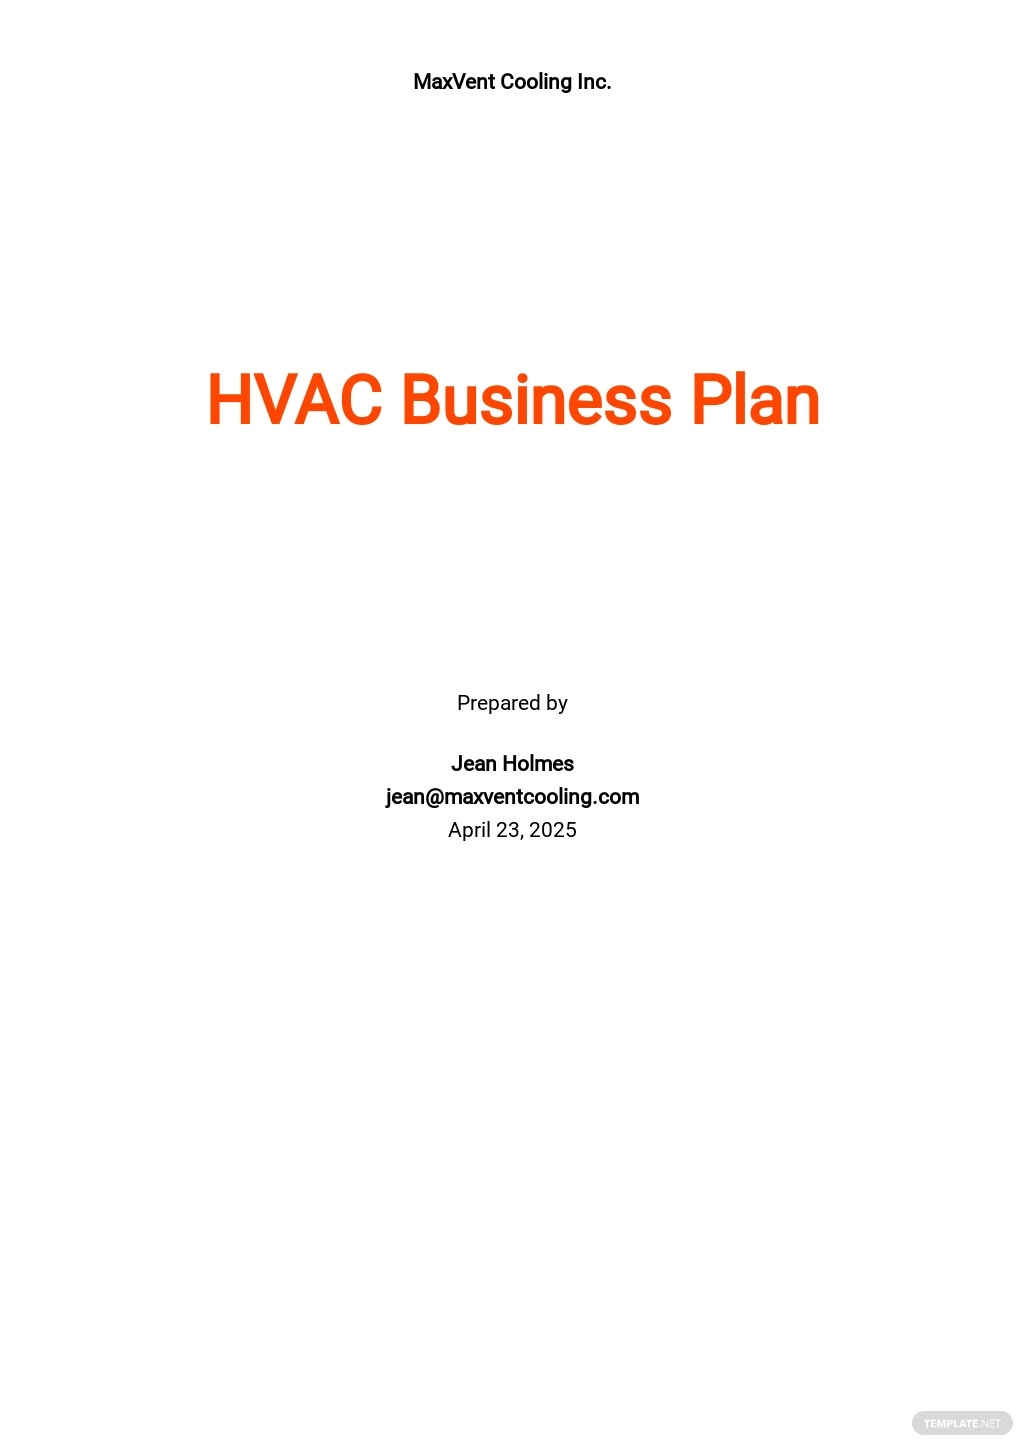 HVAC Business Plan Template.jpe